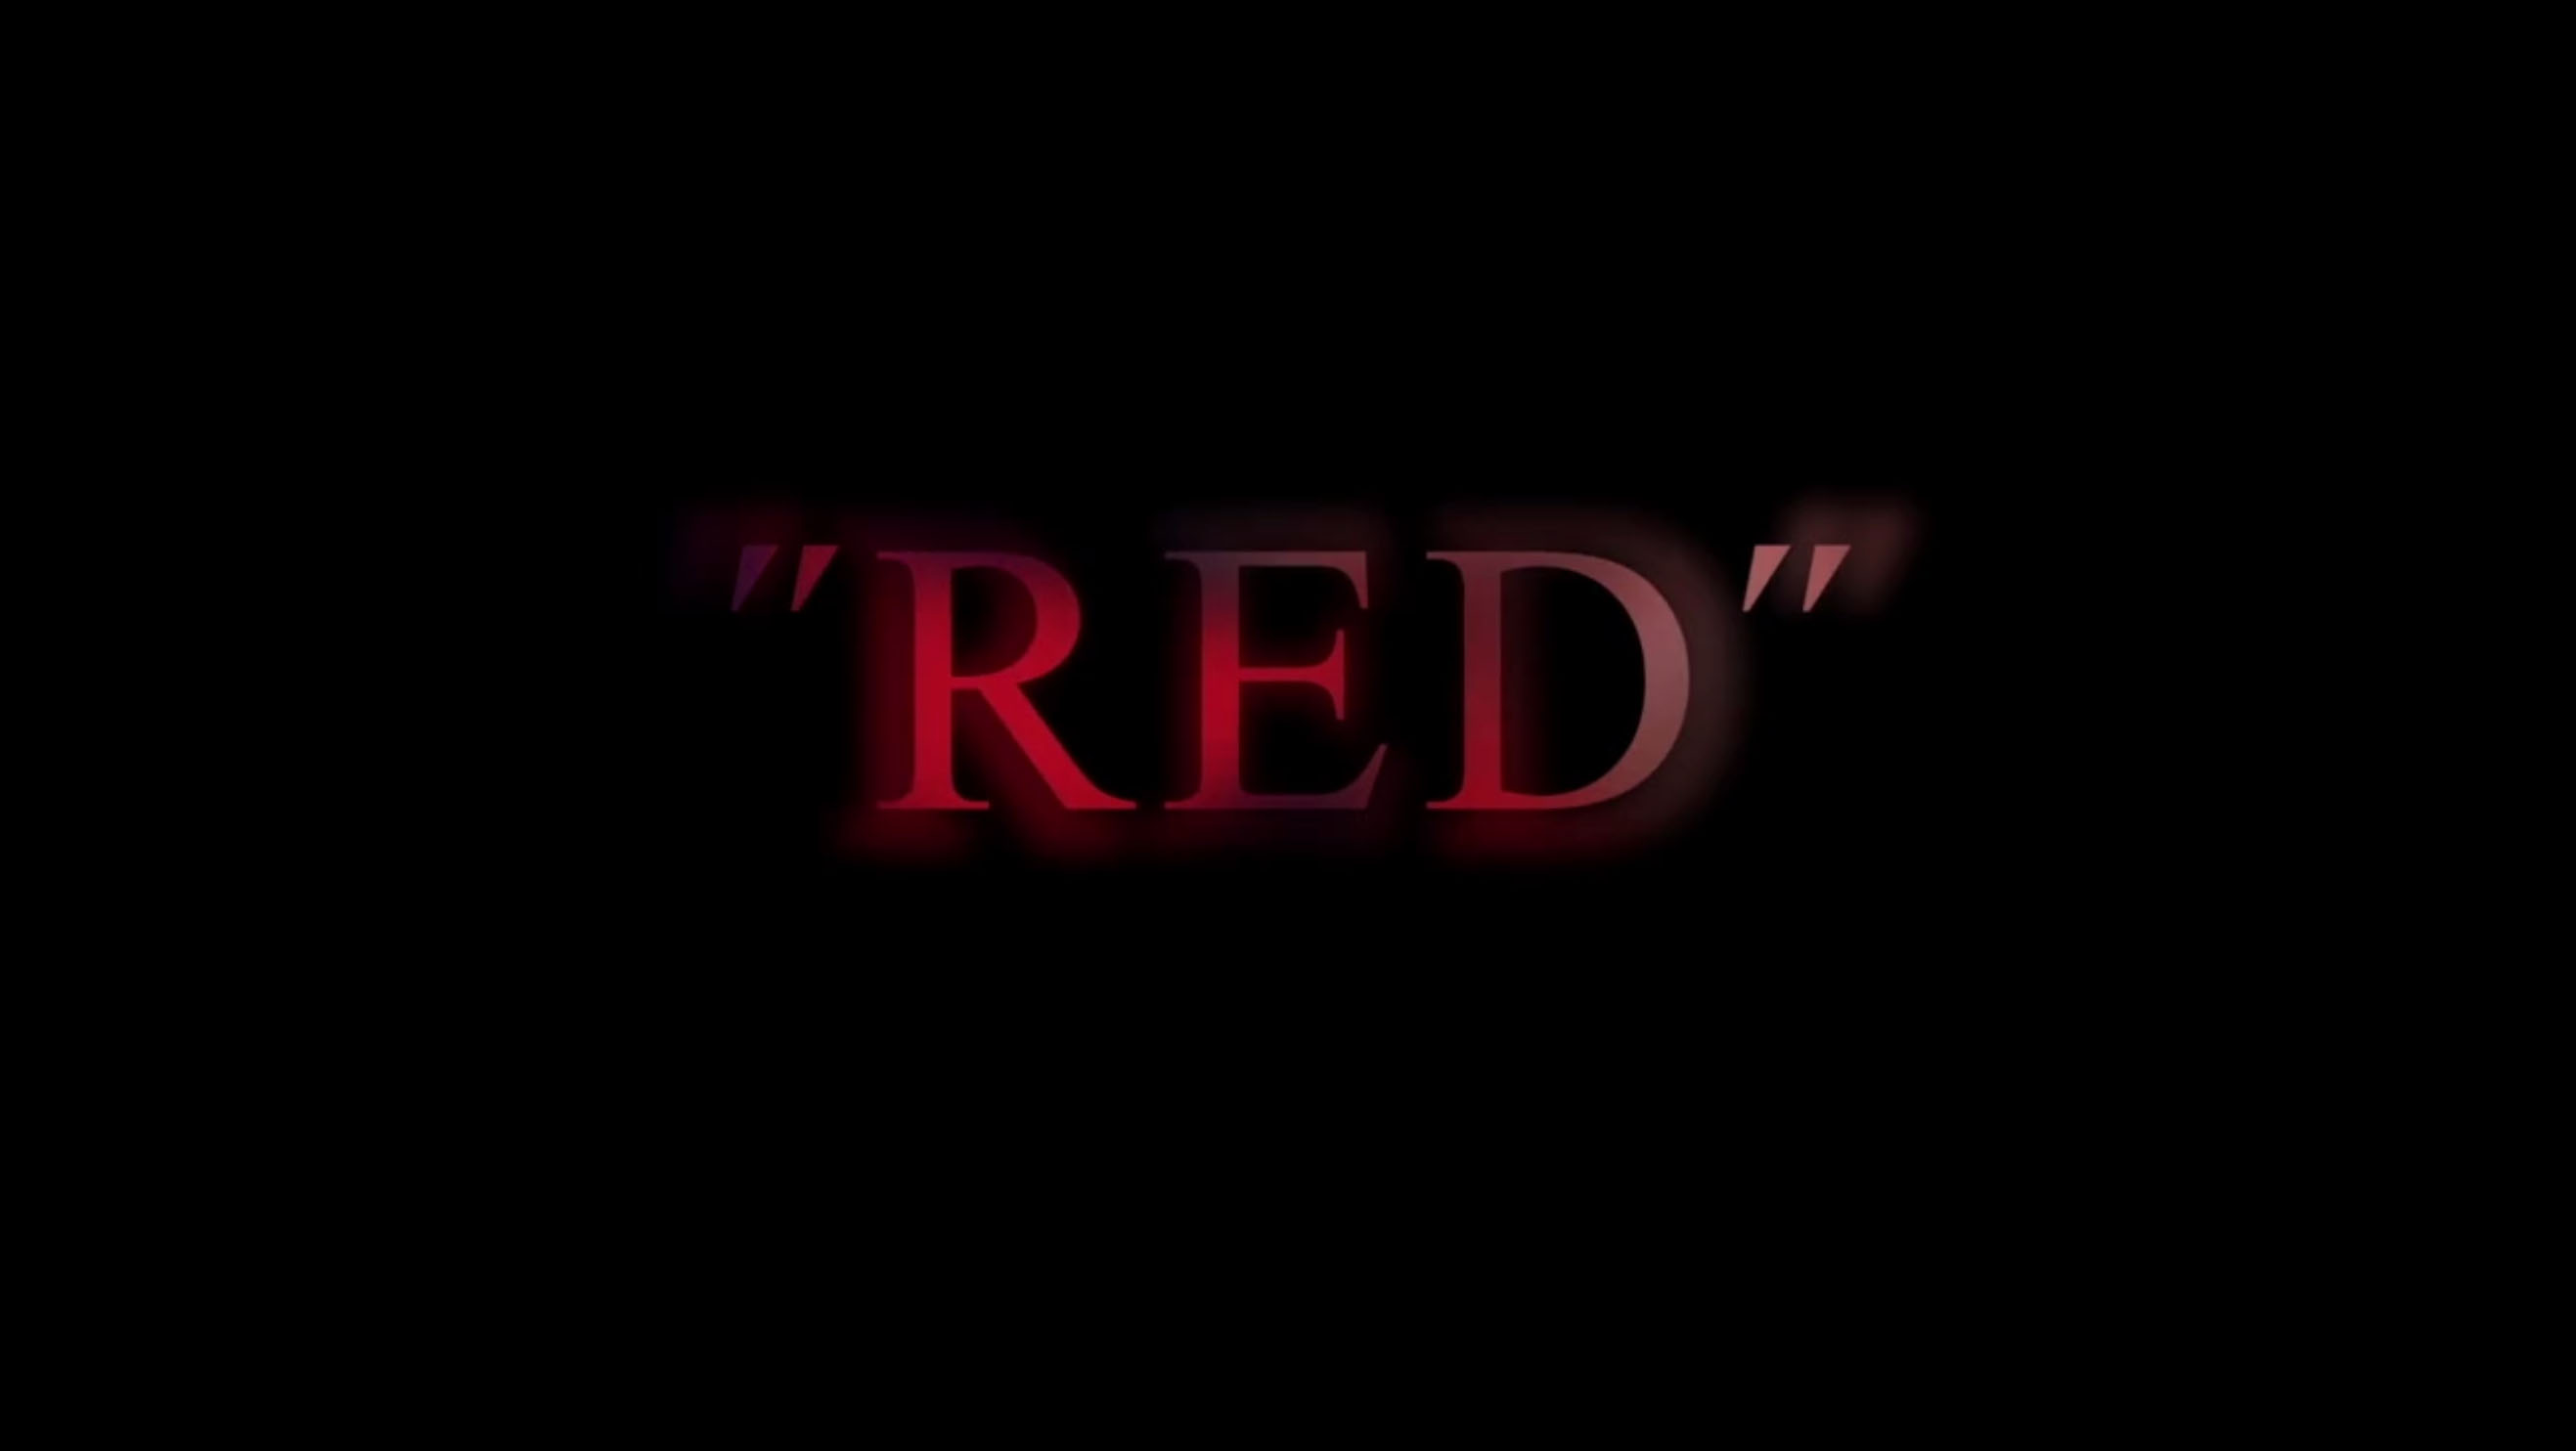 Red (episode)/Gallery